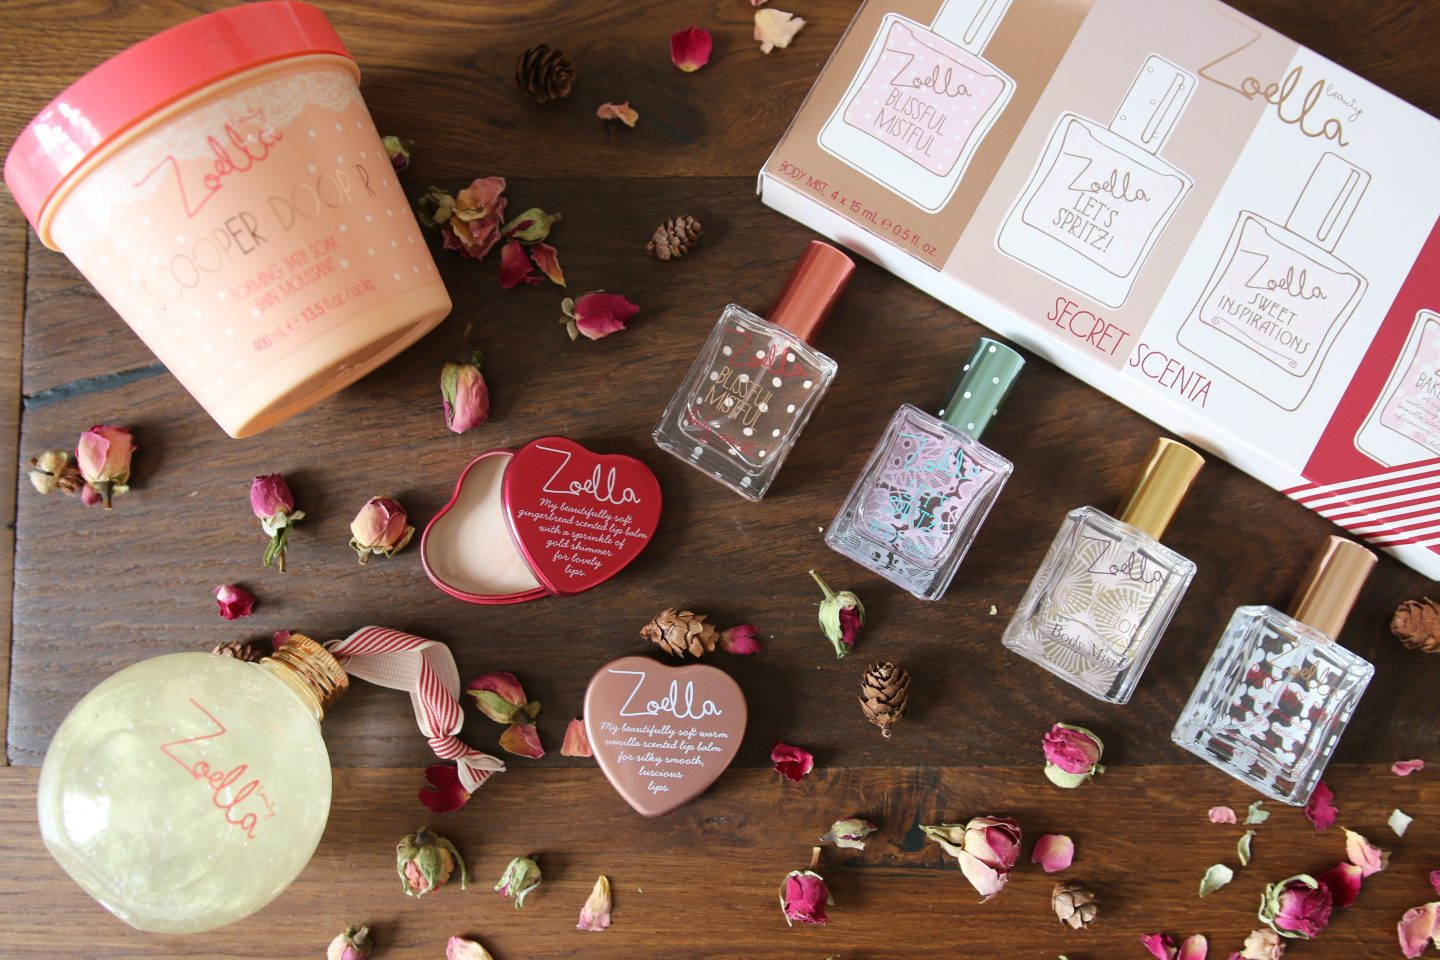 Zoella Lifestyle & Christmas Beauty Review - Emma Mumford